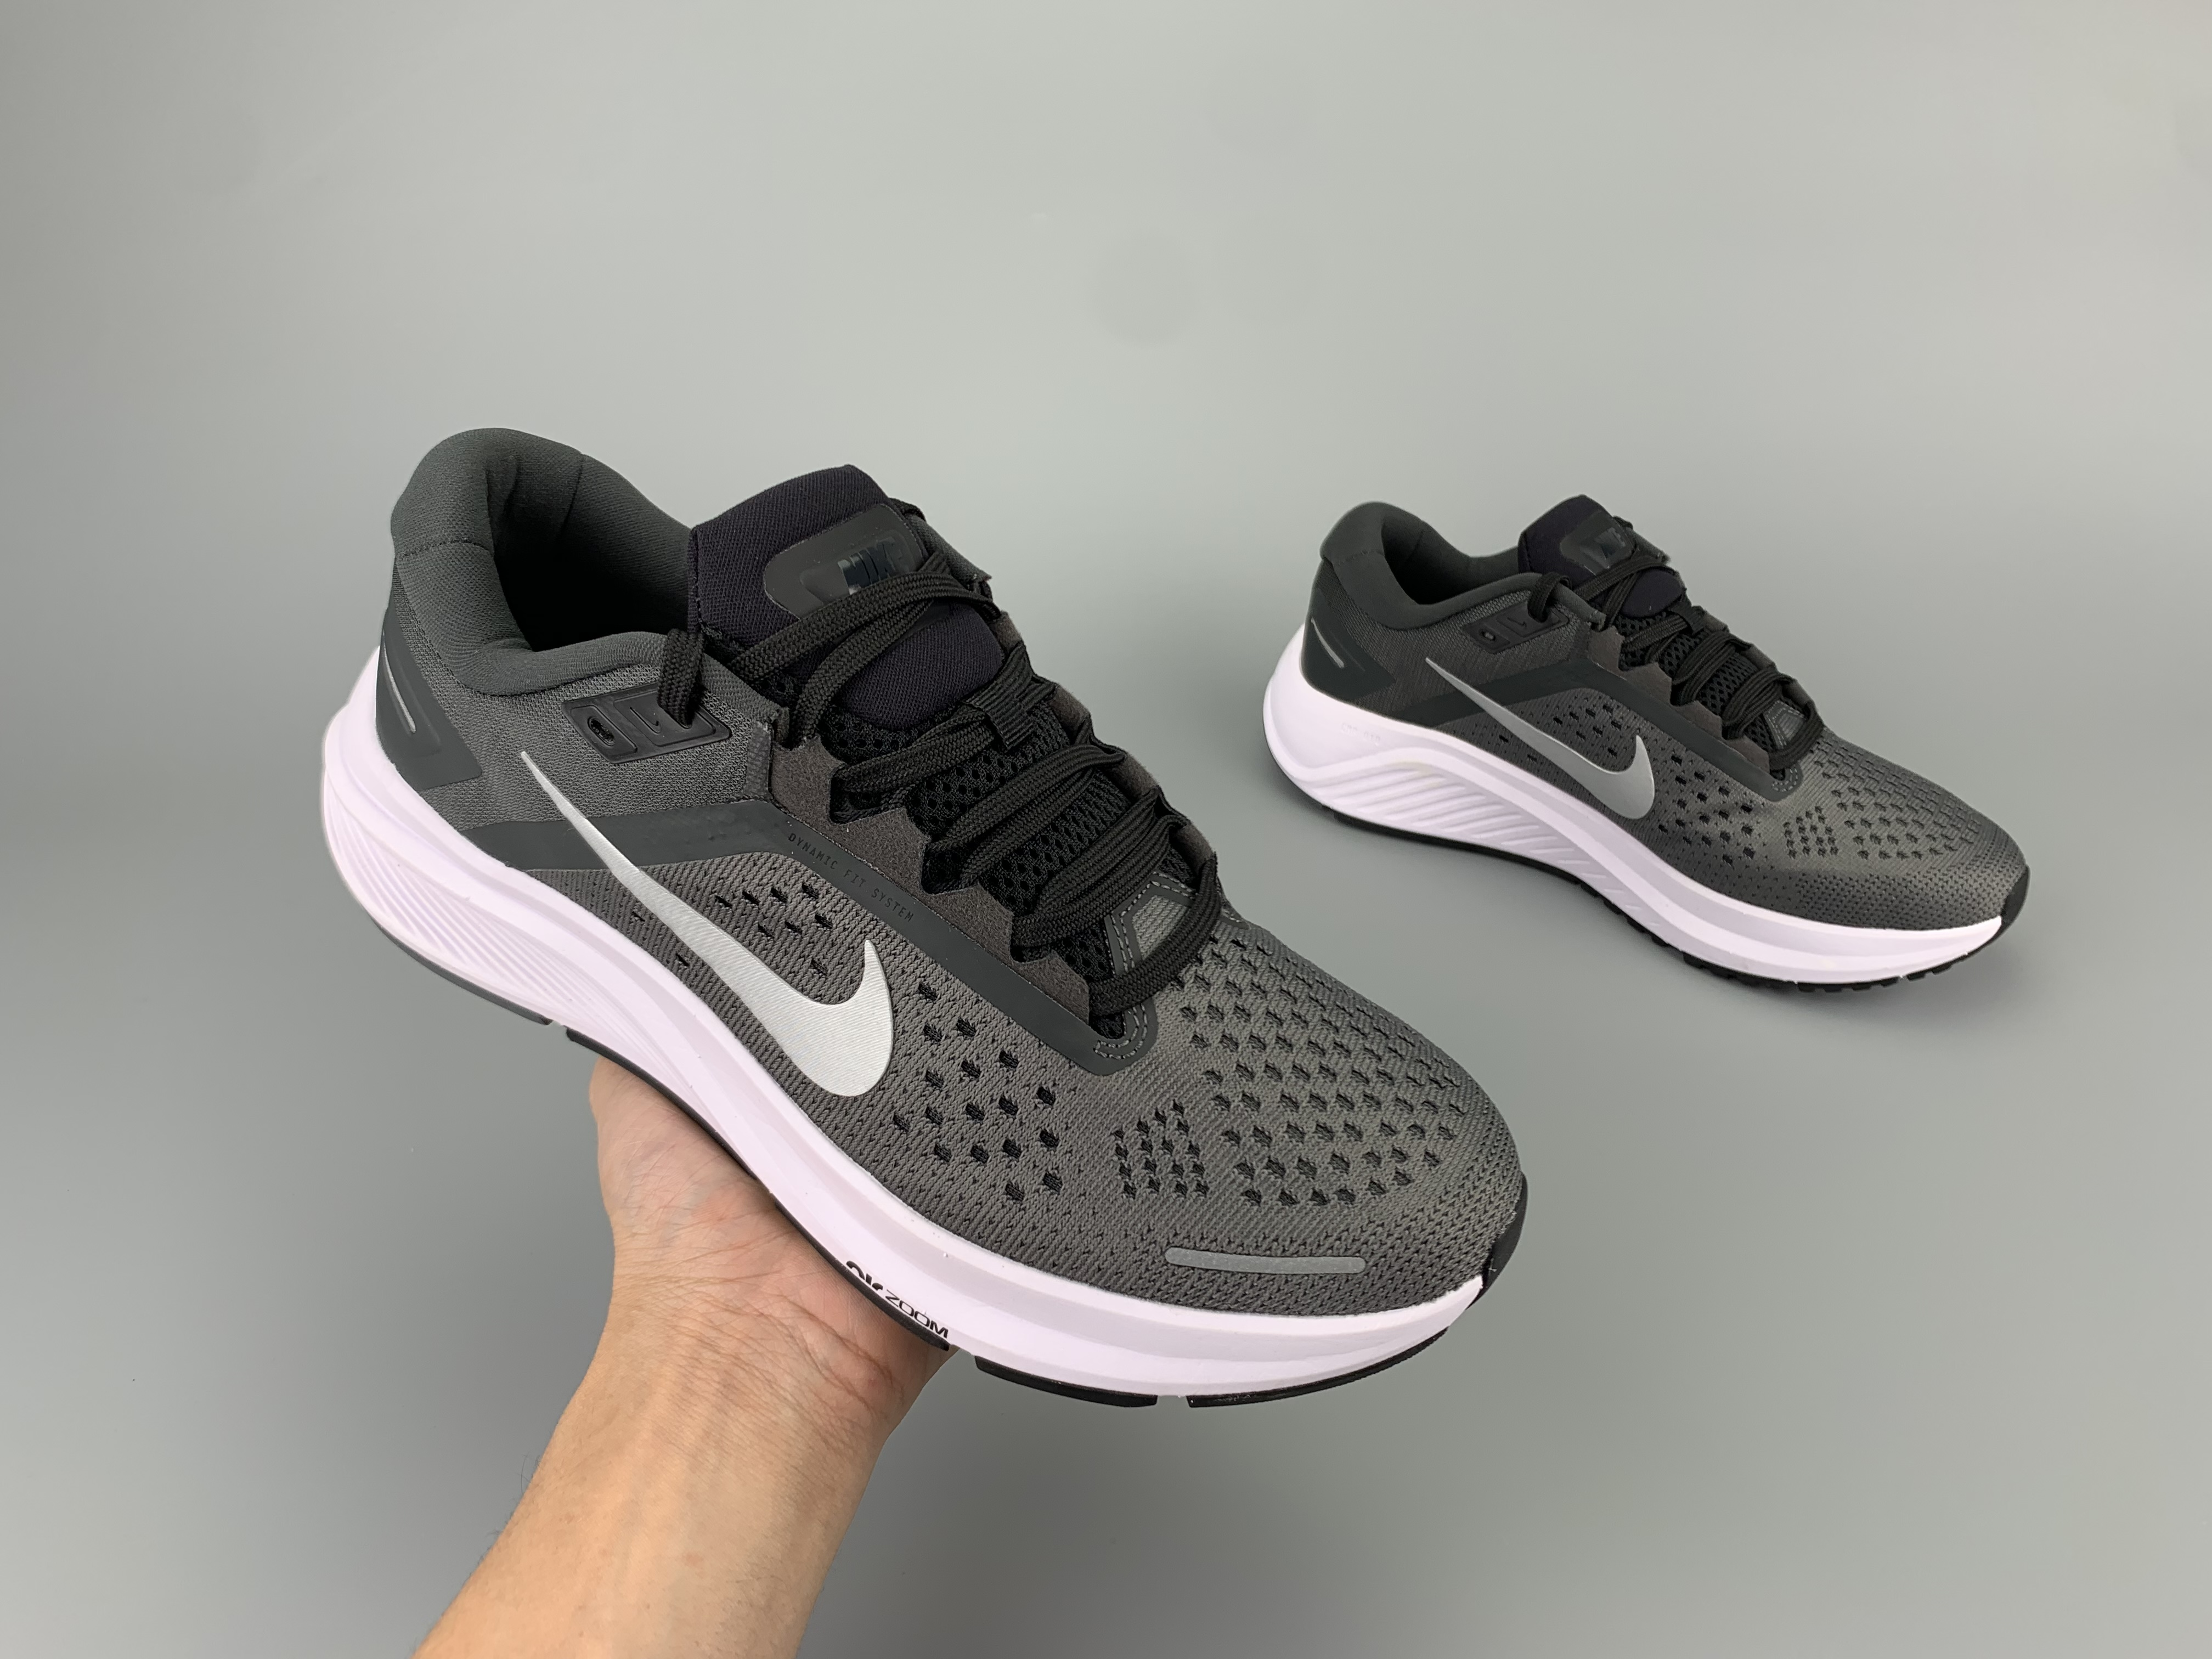 Nike Zoom Structure 23 Black Grey White Shoes